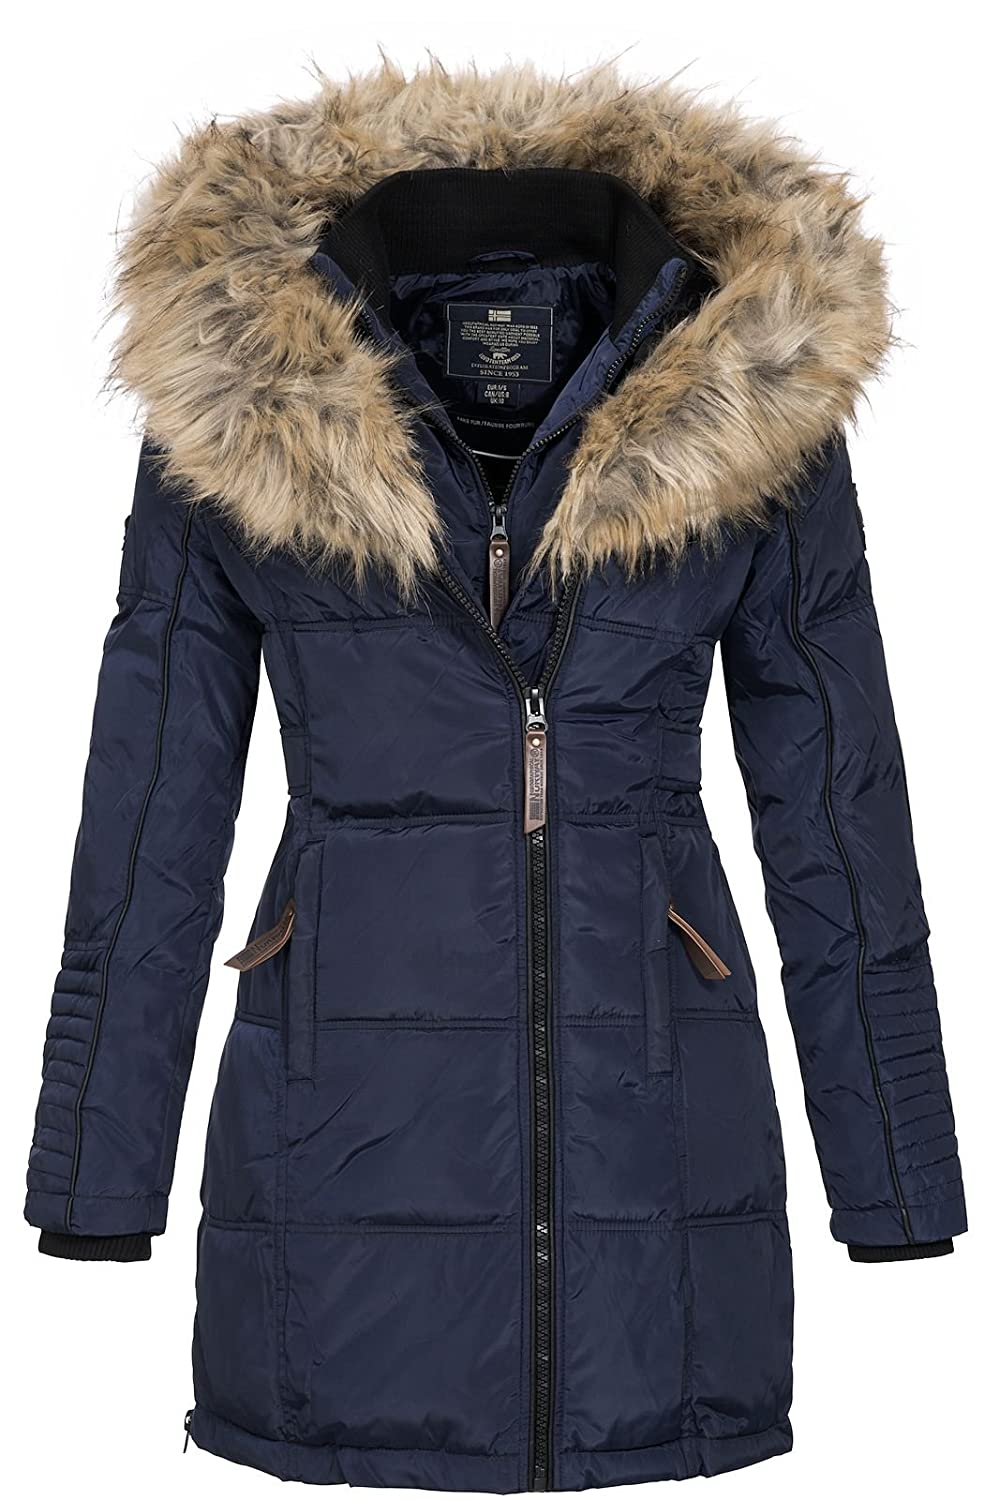 Geographical Norway - Cappotto - Donna